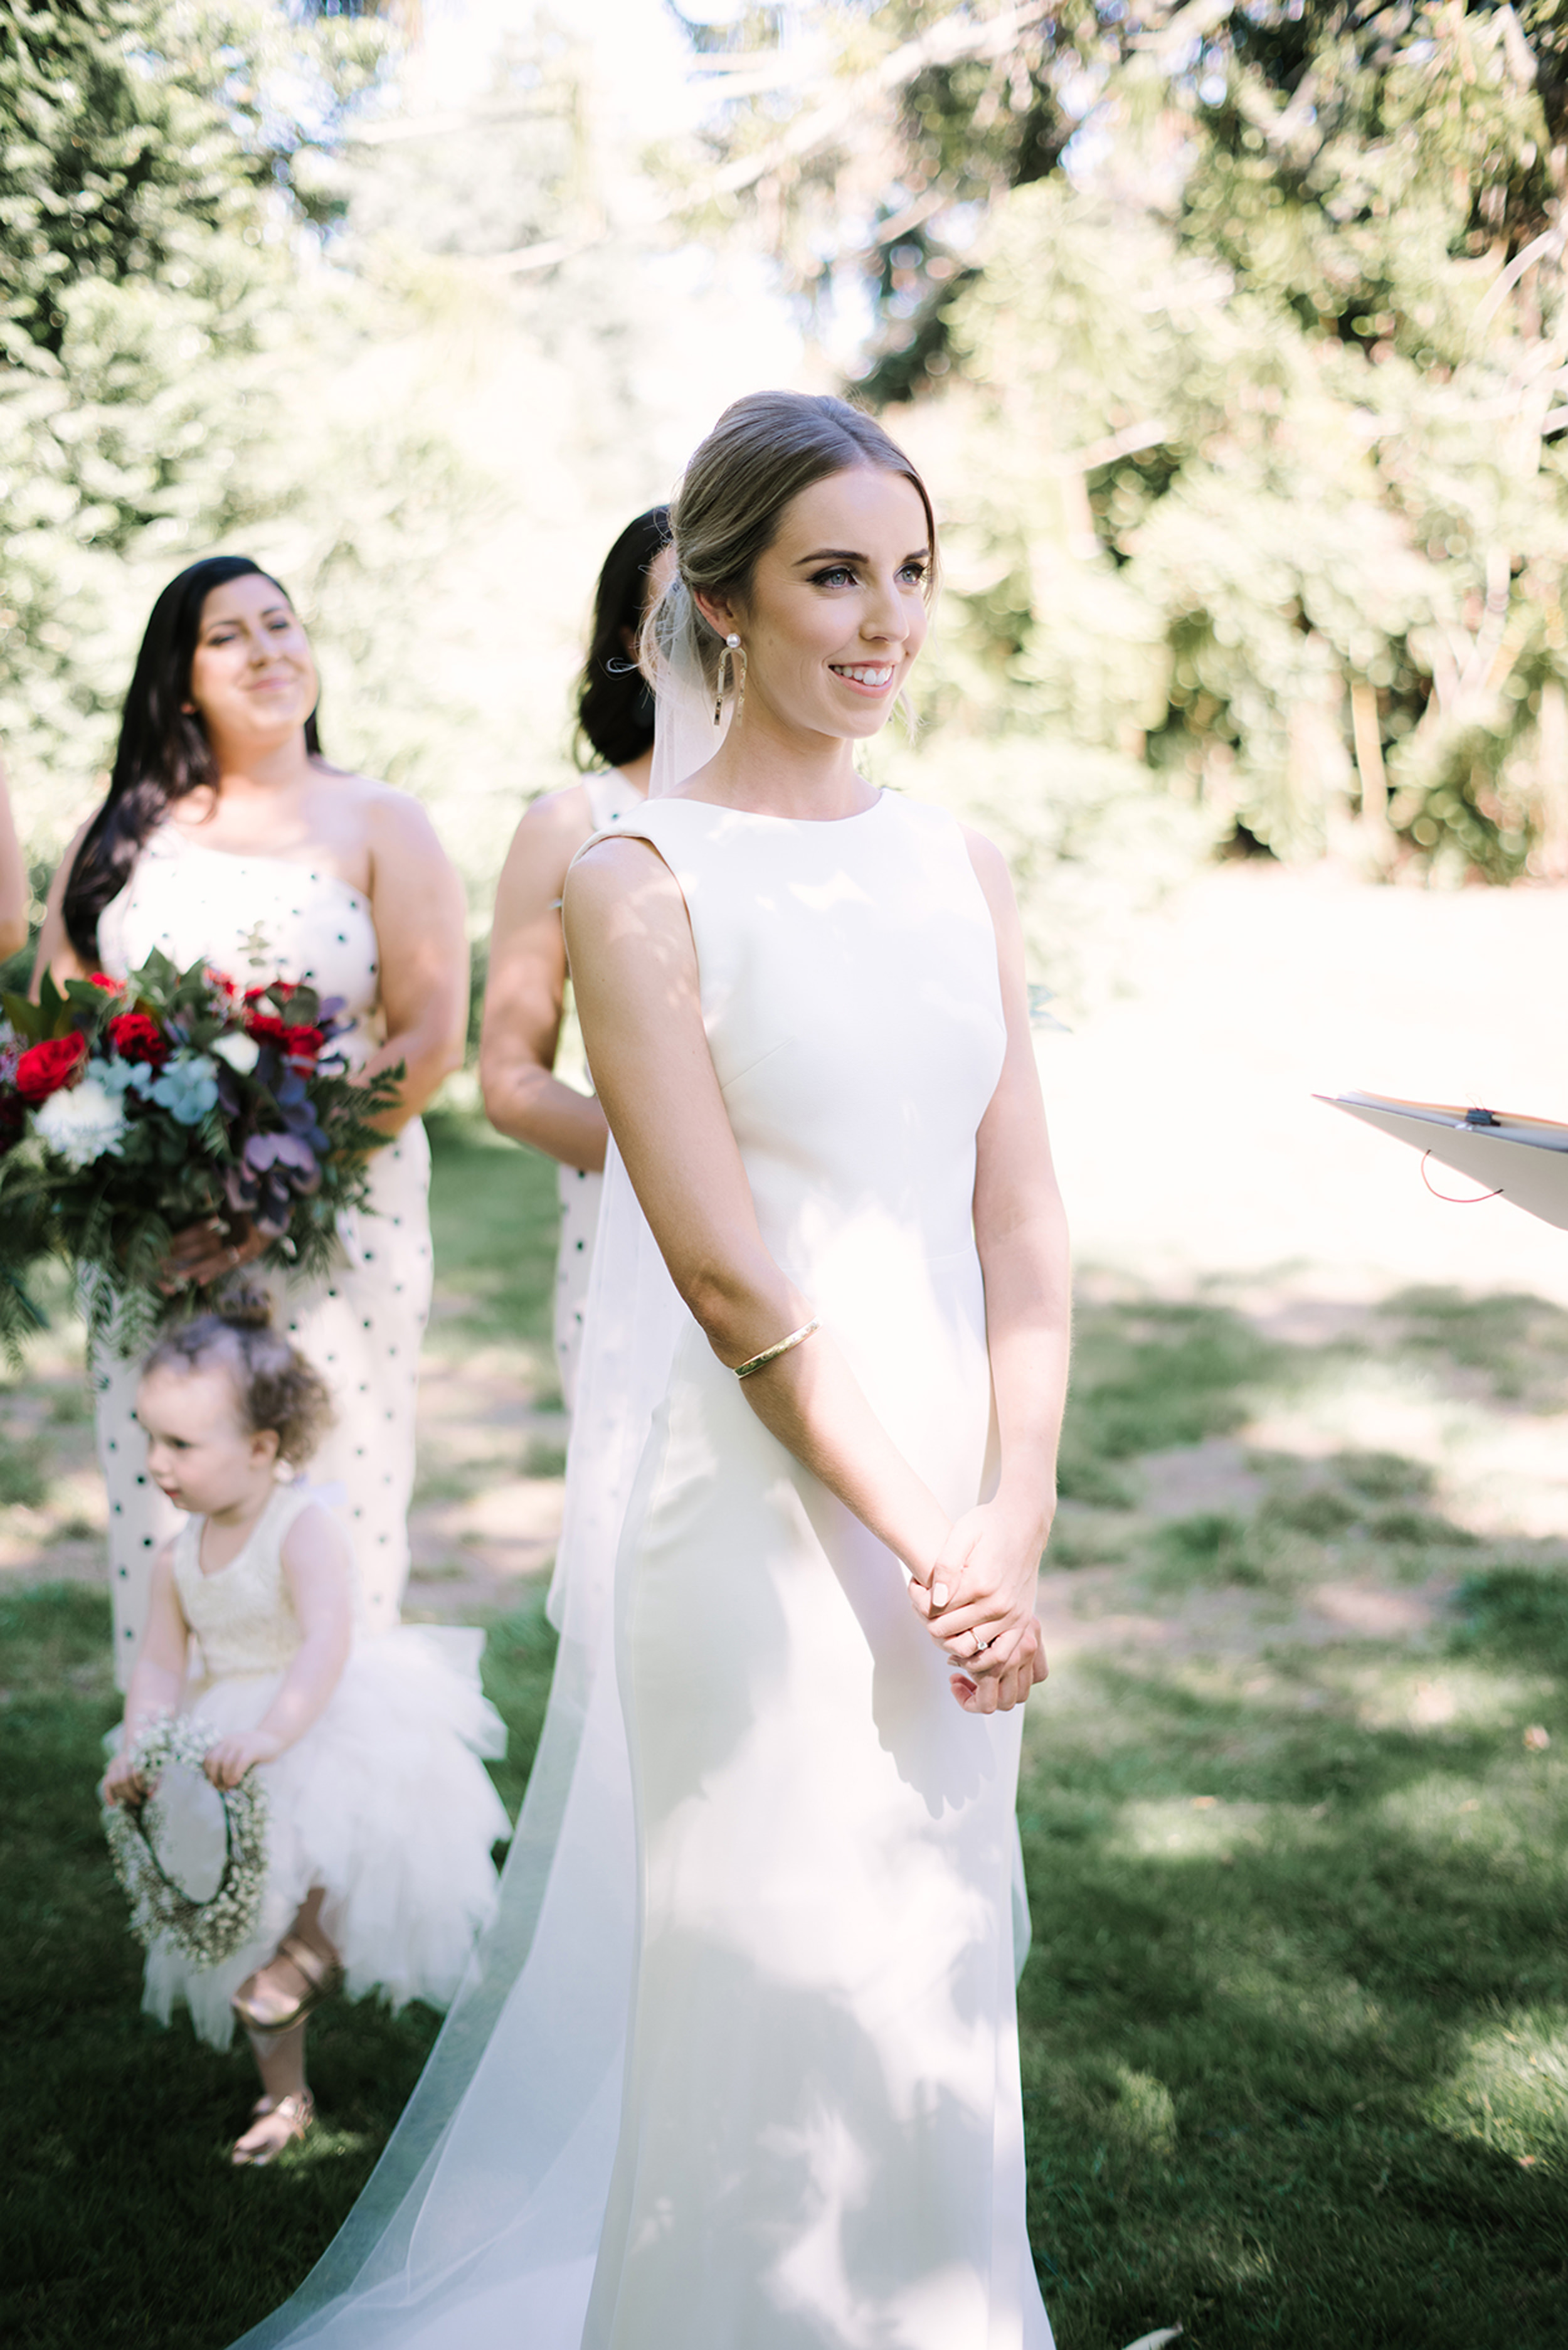 I_Got_You_Babe_Co._Megan_Andrew_Country_Property_Wedding_Victoria0035.JPG